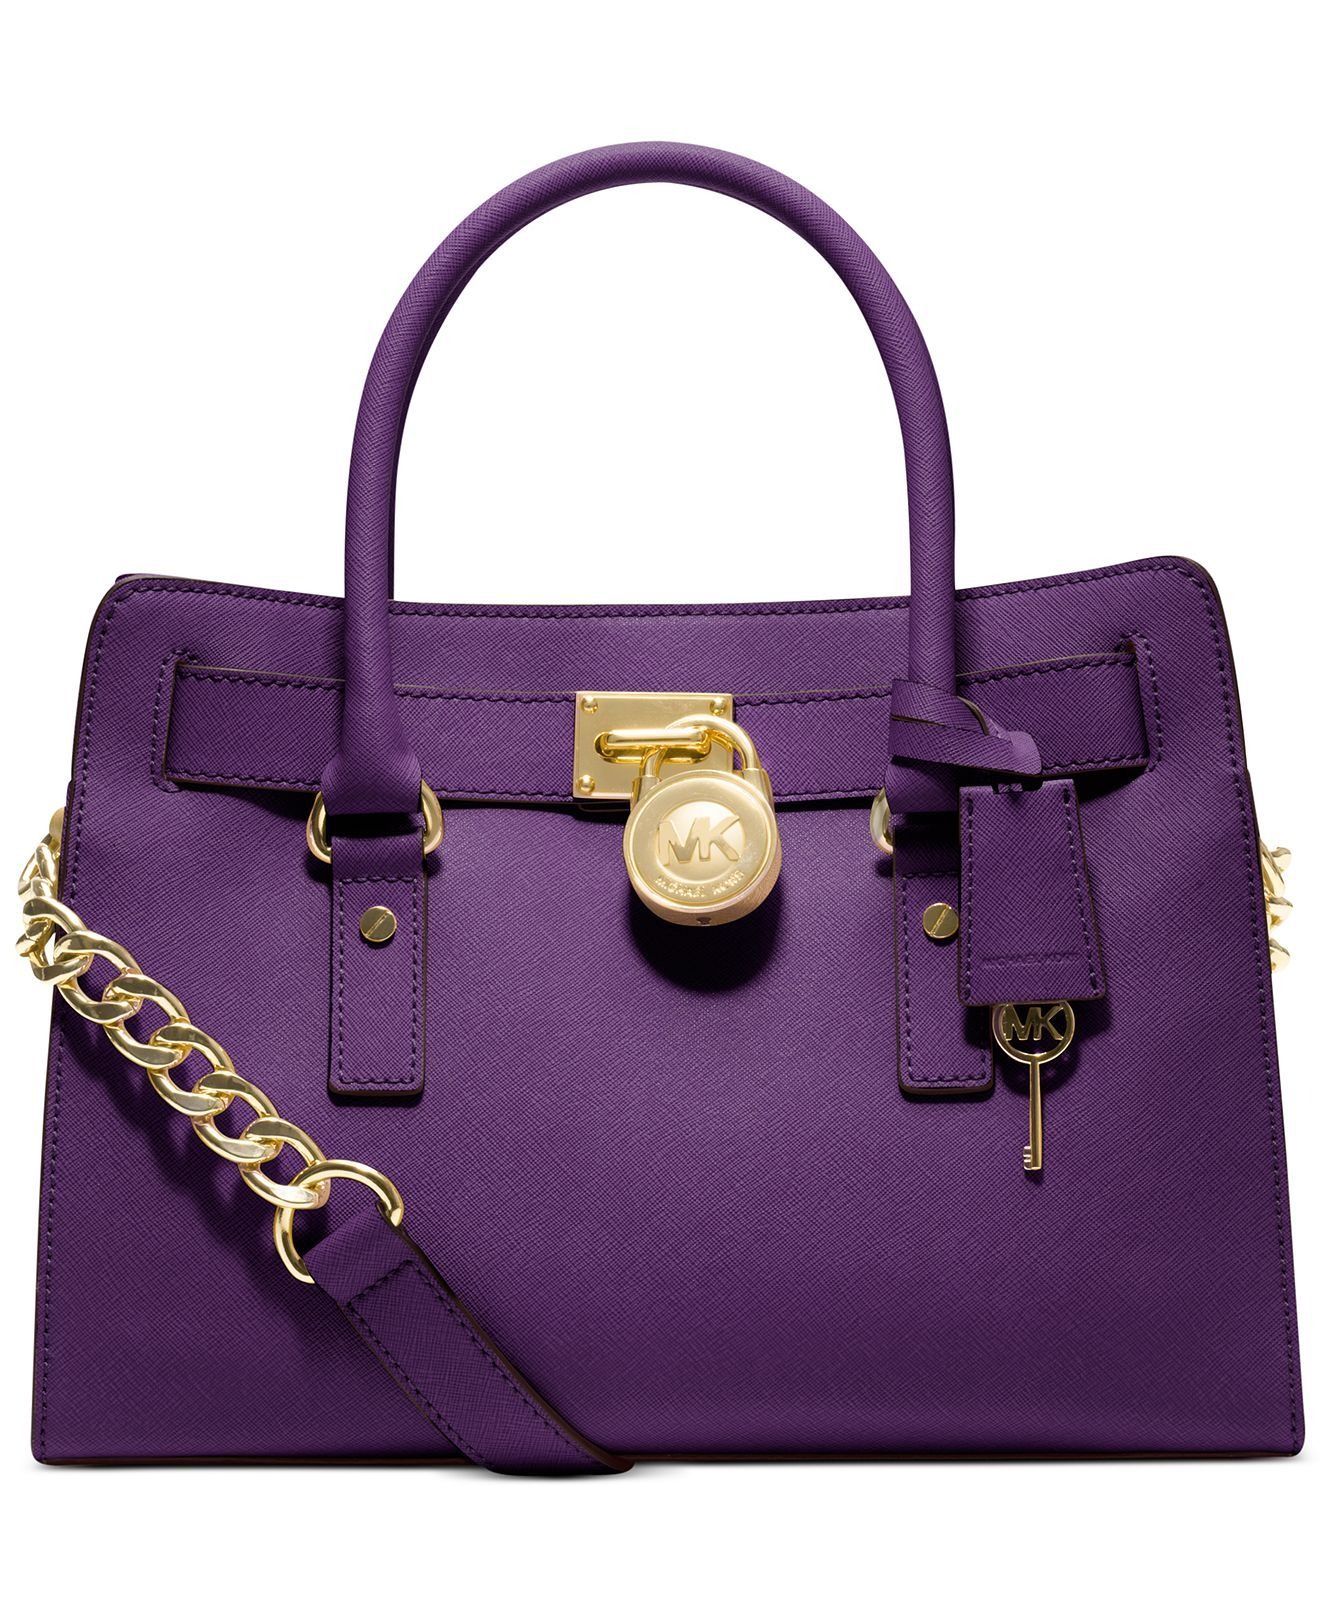 MICHAEL Michael Kors Hamilton Saffiano Leather E W Satchel - Satchels -  Handbags   Accessories - Macy s 62a871fbb28e1